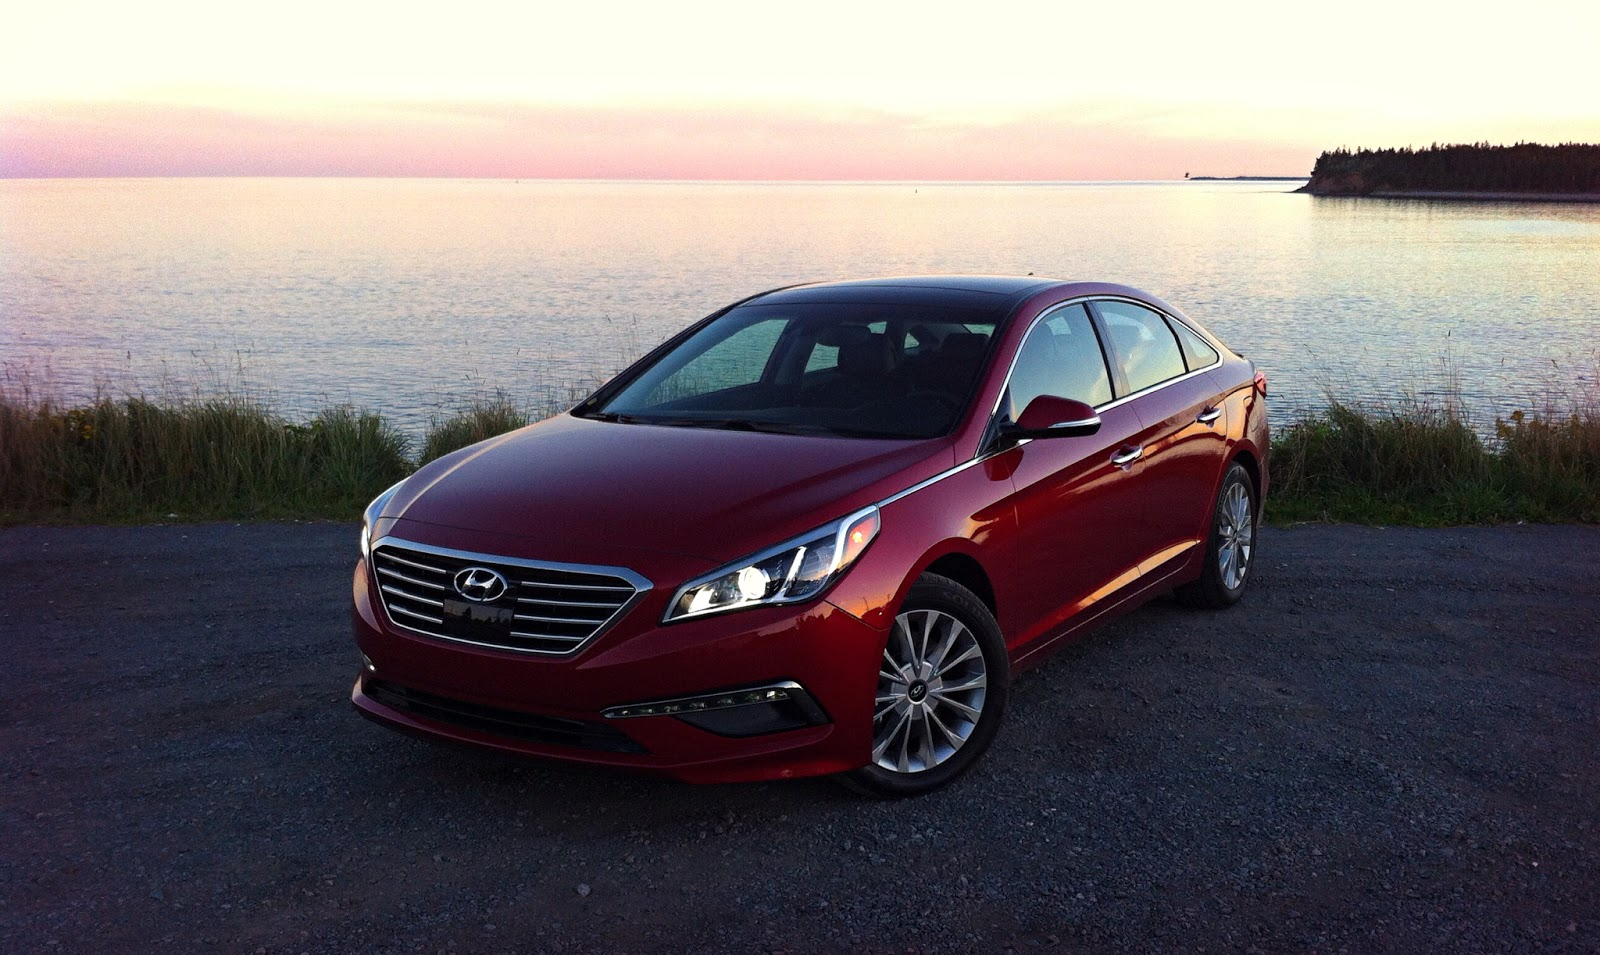 2015 hyundai sonata limited review less style less power more of everything else good car. Black Bedroom Furniture Sets. Home Design Ideas